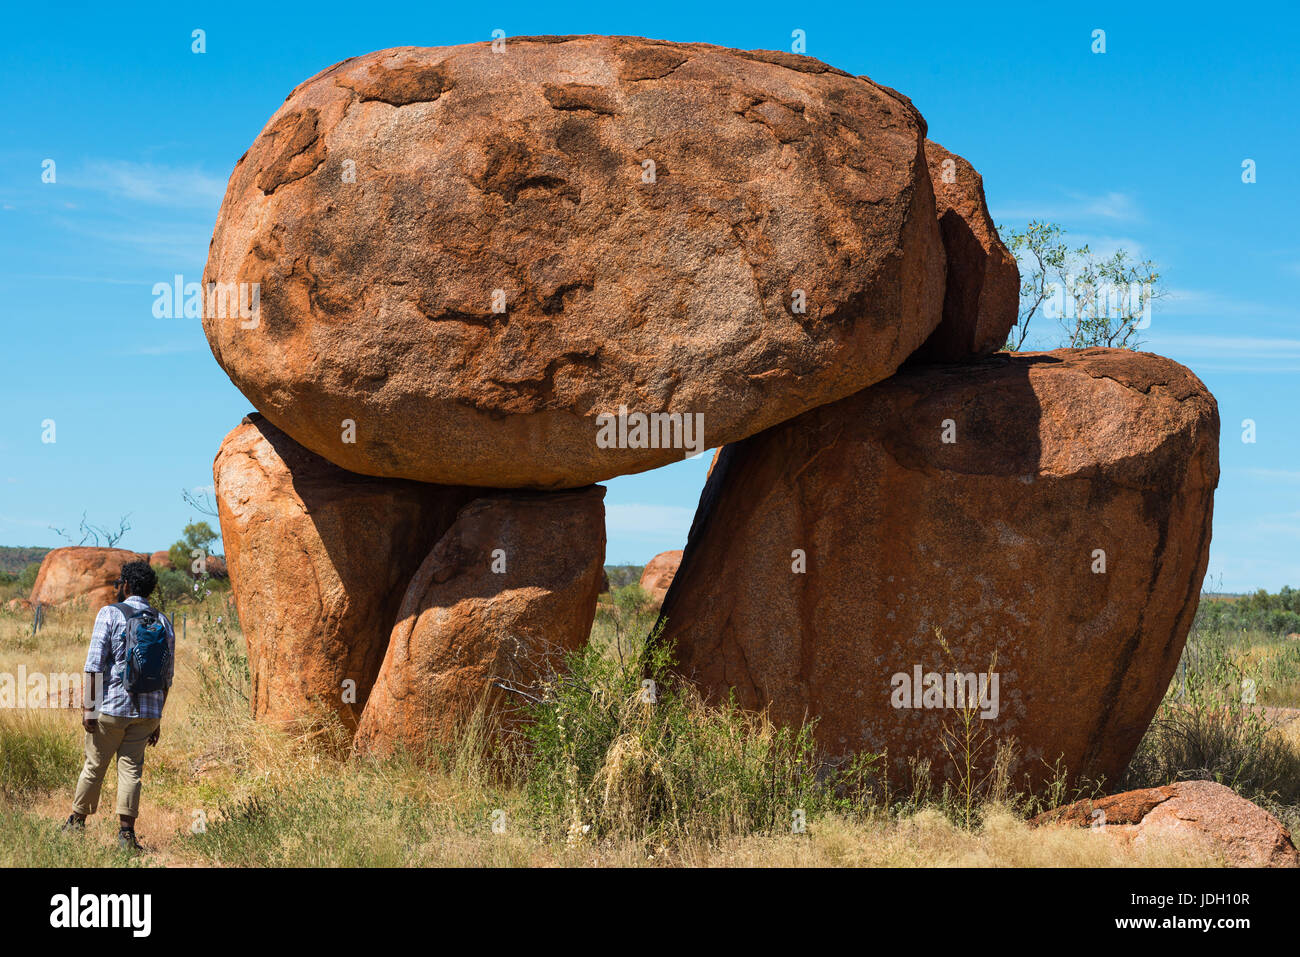 Devils Marbles - boulders of red granite are balanced on bedrock, Australia, Northern Territory. - Stock Image